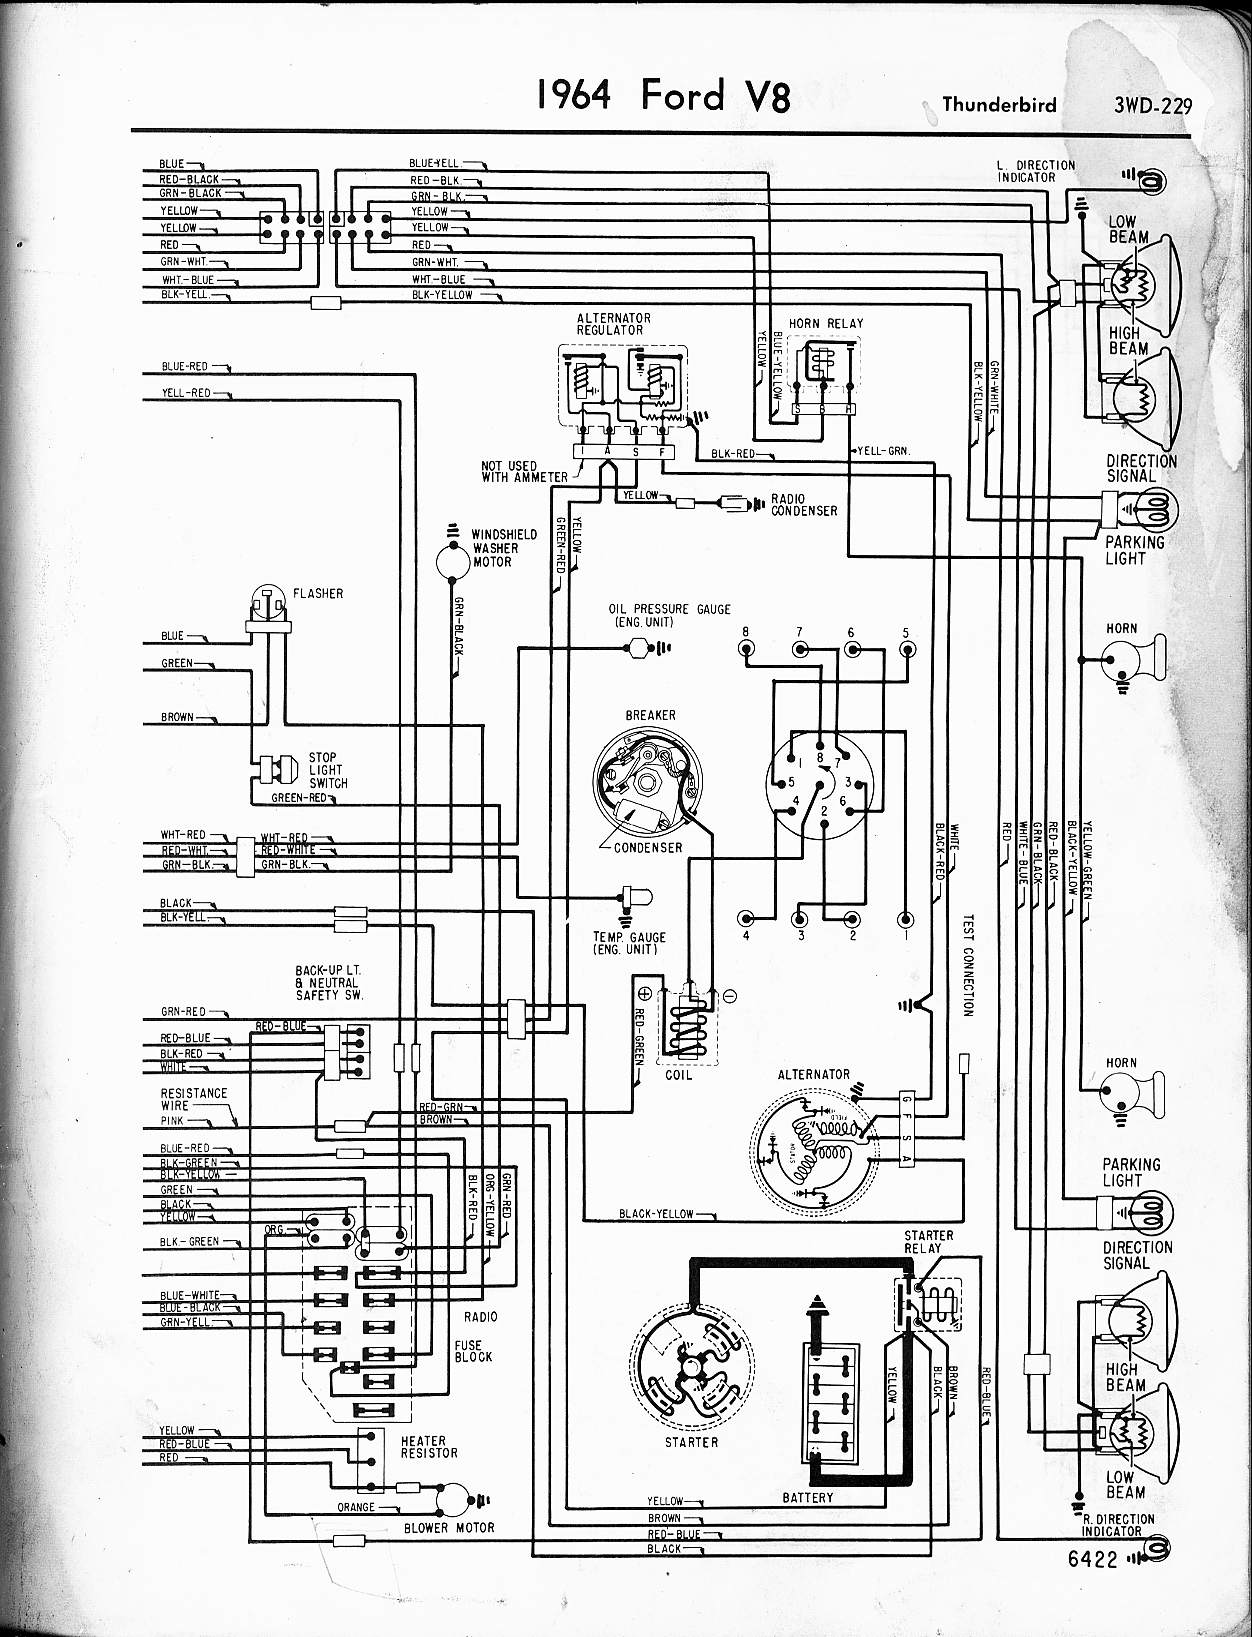 1964 Mustang Fuse Box Wiring Library Mth Dcs Diagram Ford Thunderbird